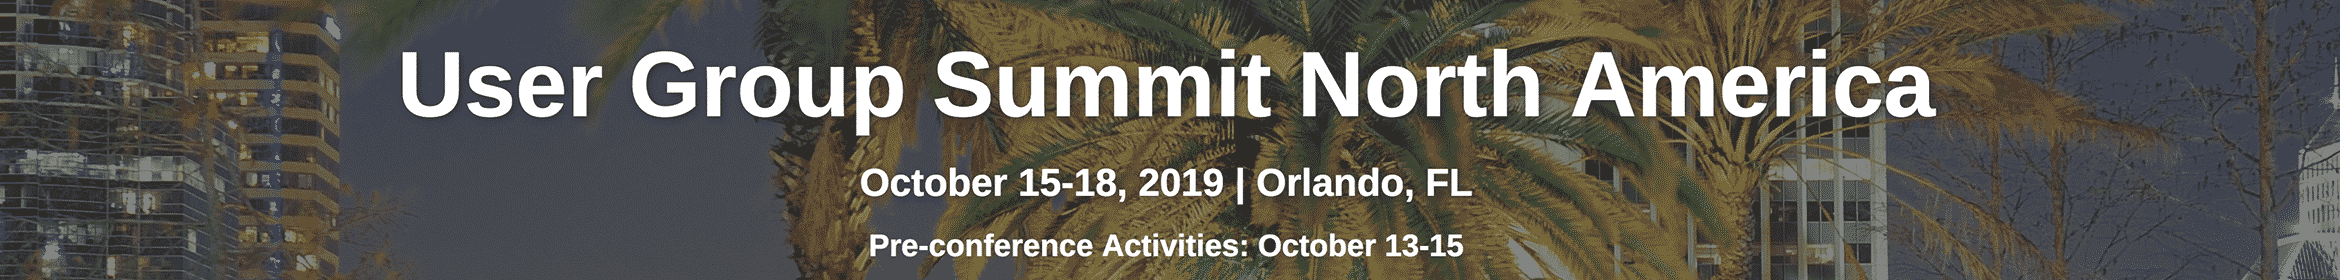 Summit NA Orlando 2019 Main banner